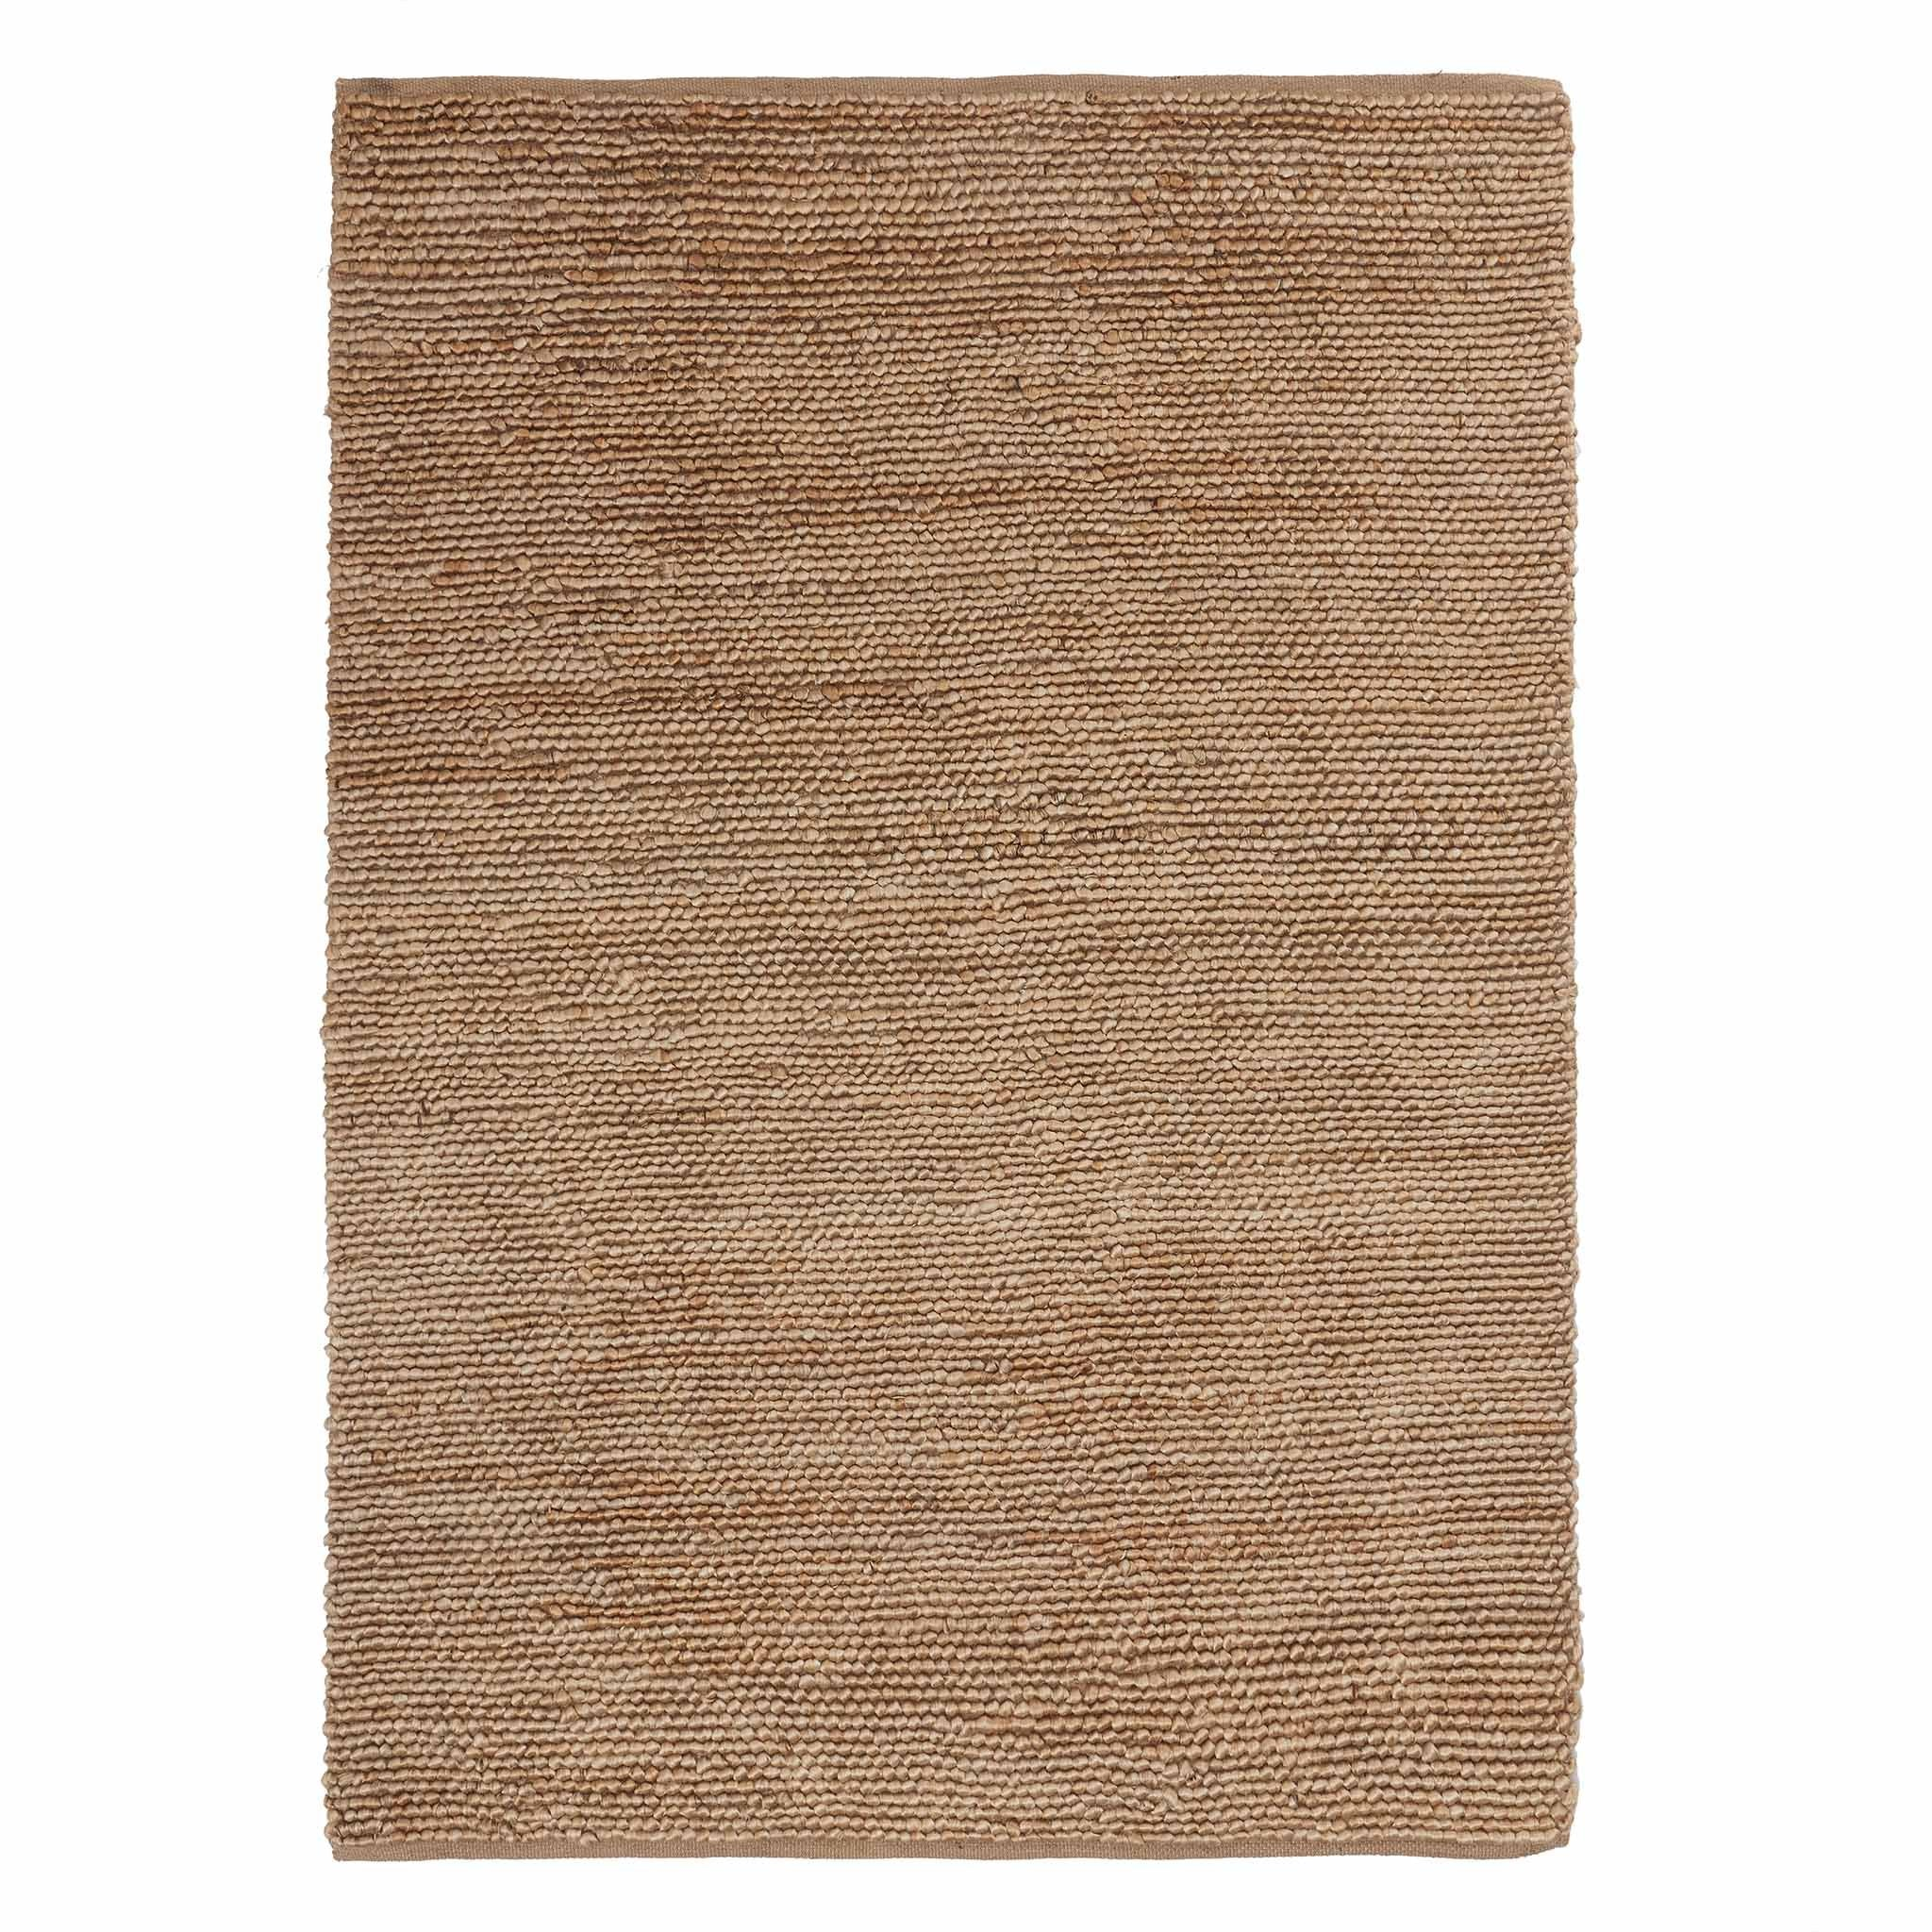 Salaya Rug in natural | Home & Living inspiration | URBANARA